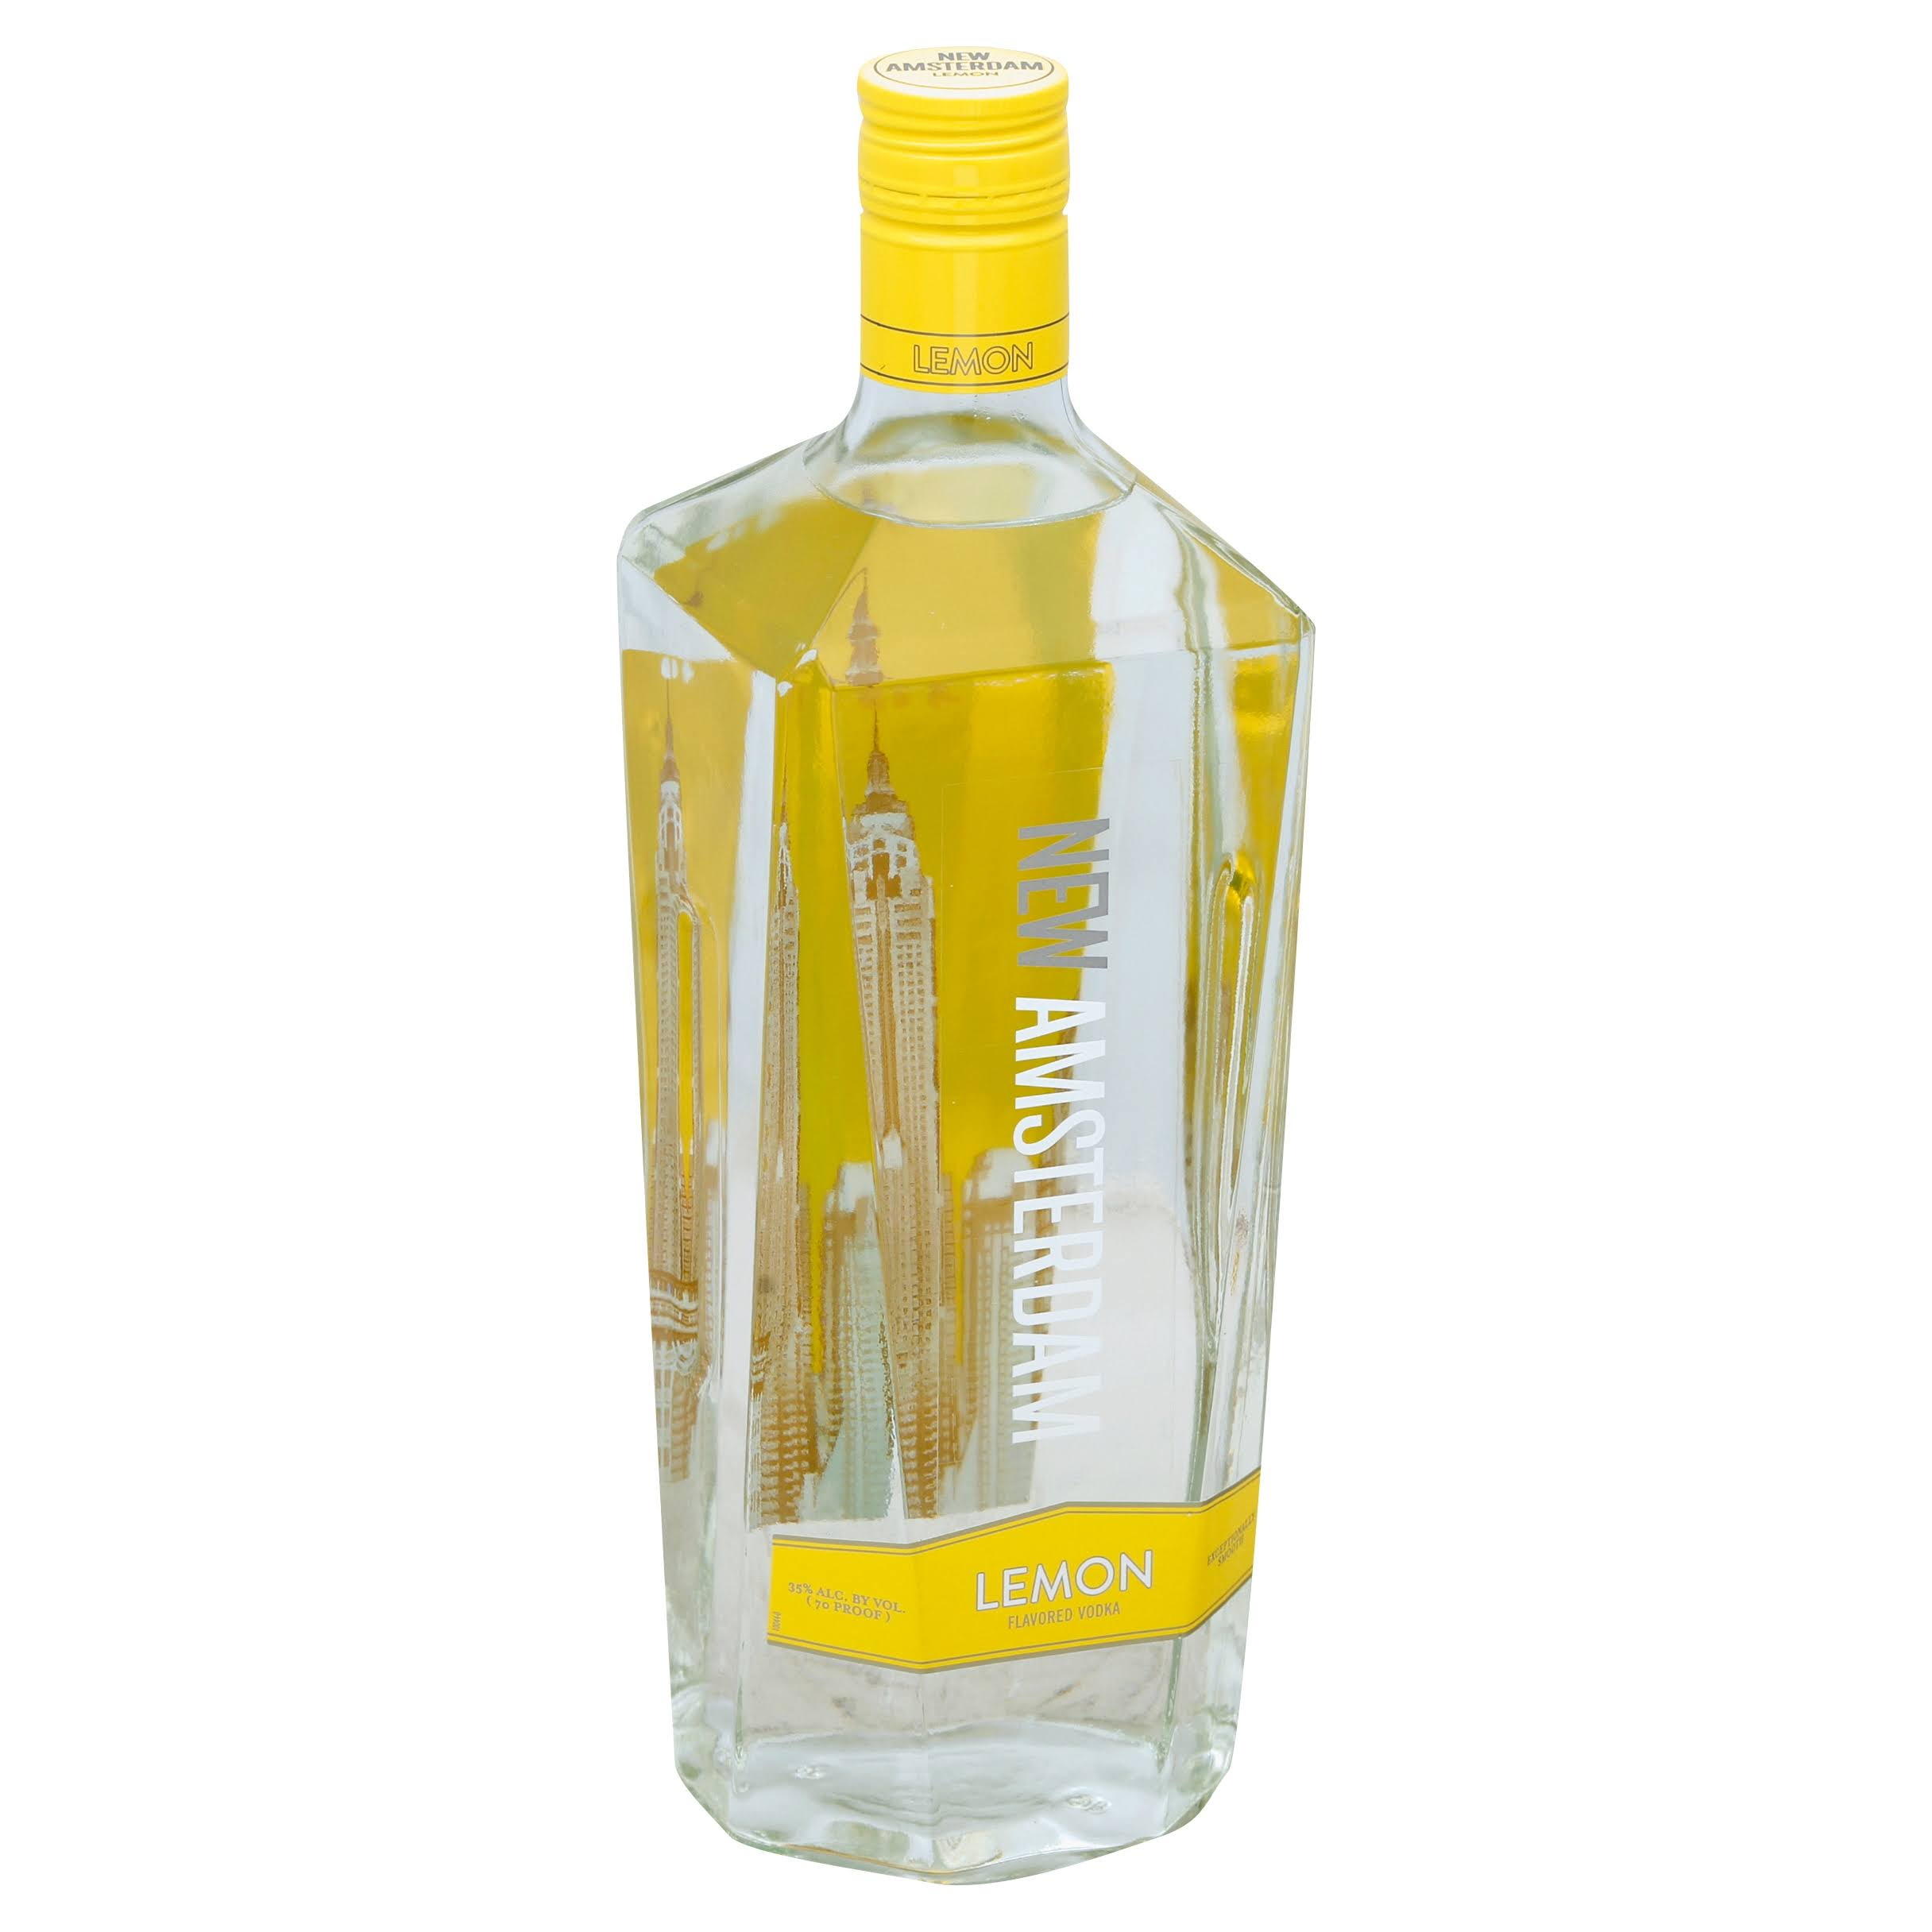 New Amsterdam Vodka, Lemon Flavored - 1.75 l